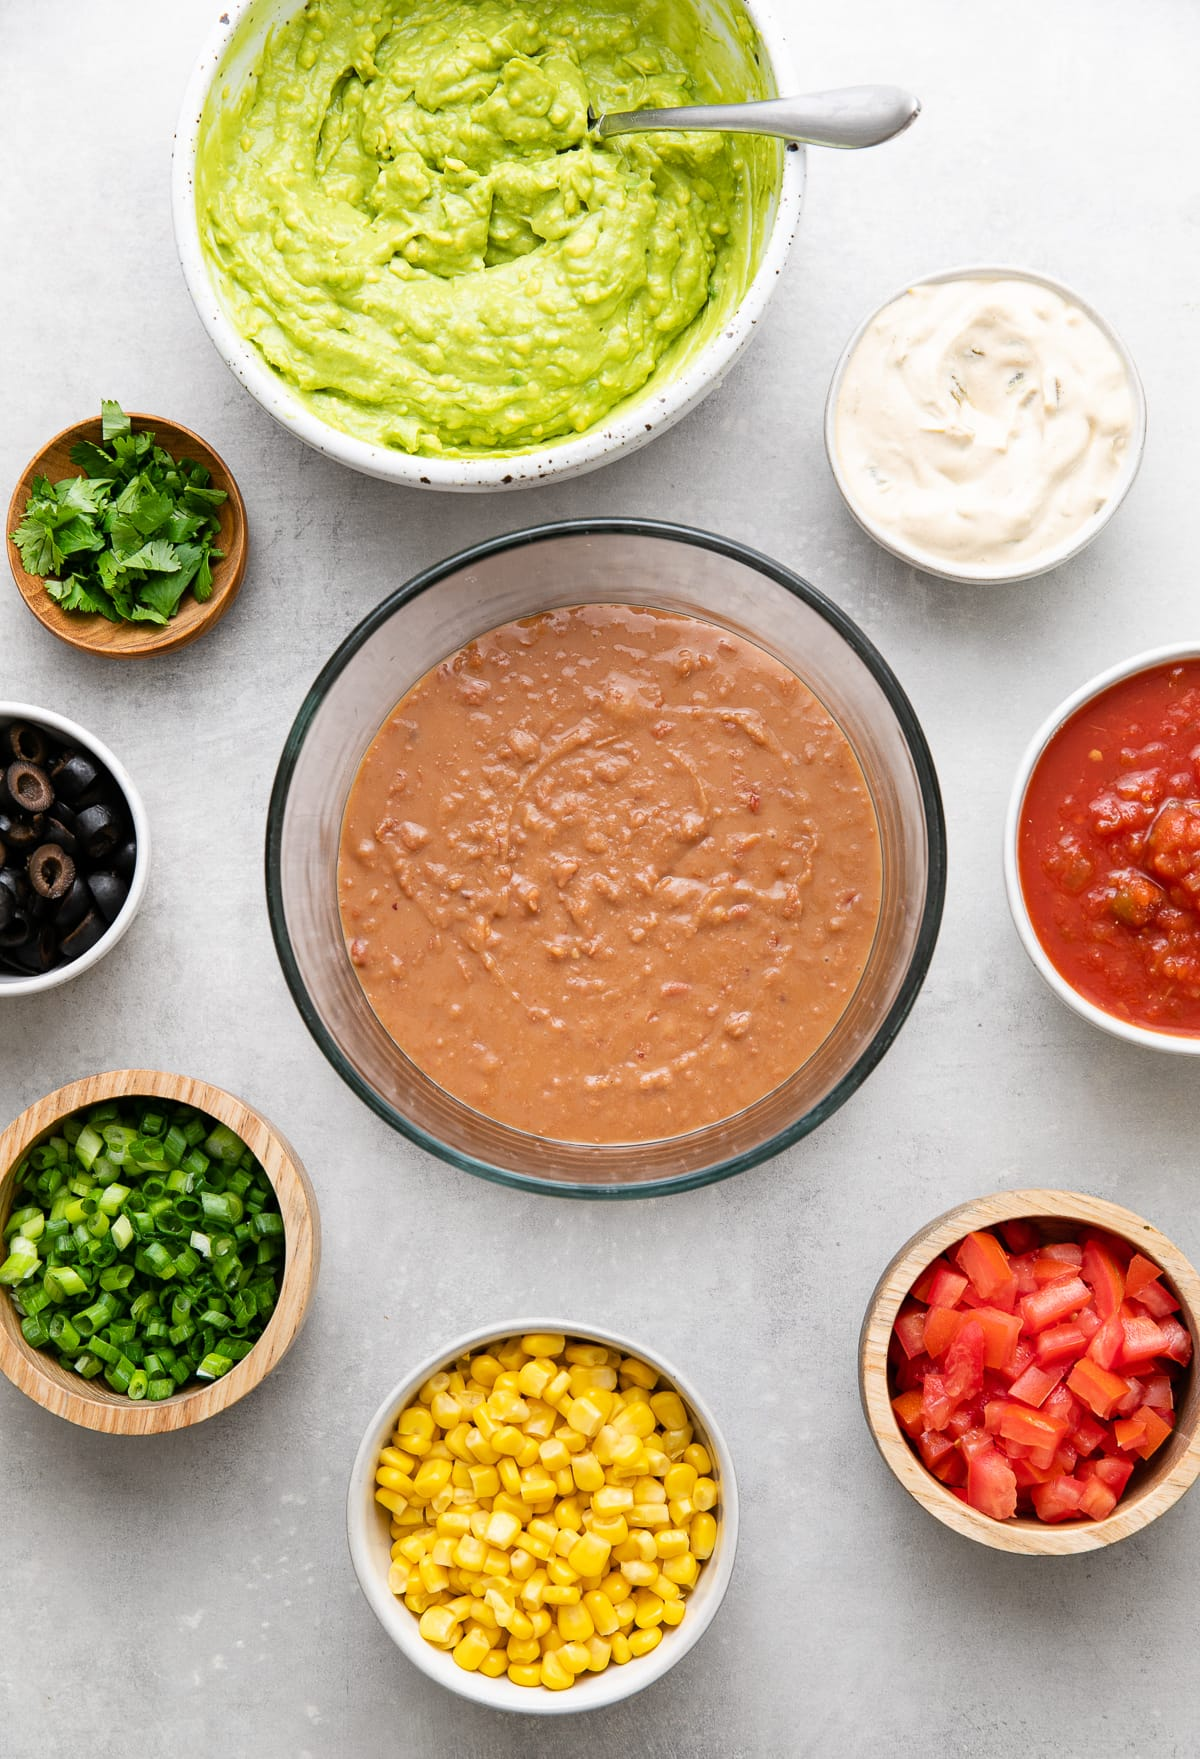 top down view of prepped ingredients ready to make vegan seven layer dip.